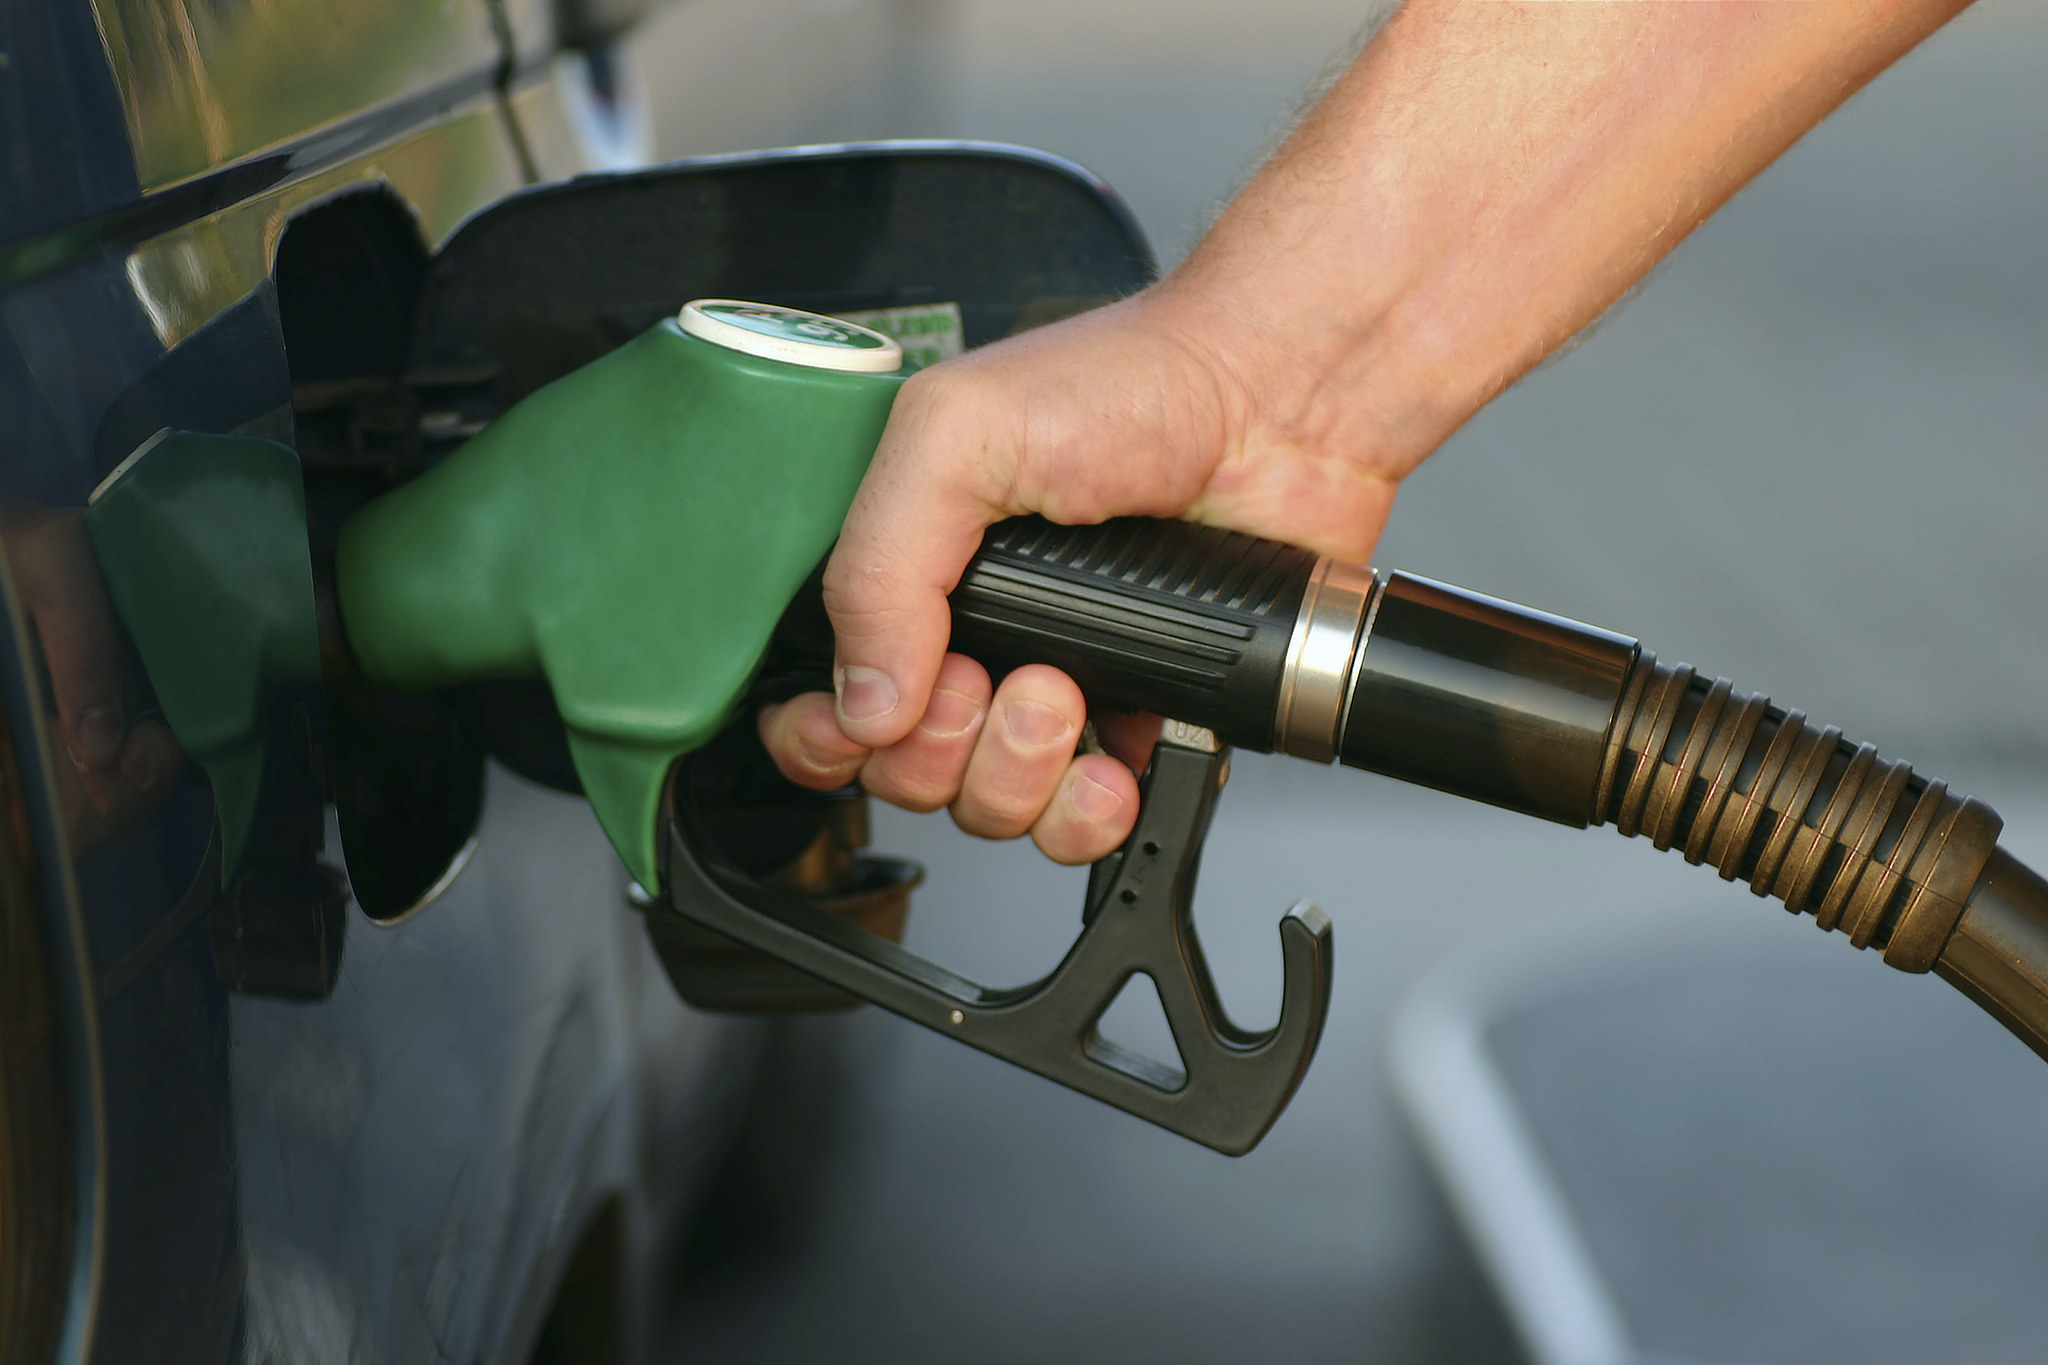 Tips and Tricks to be More Fuel Efficient